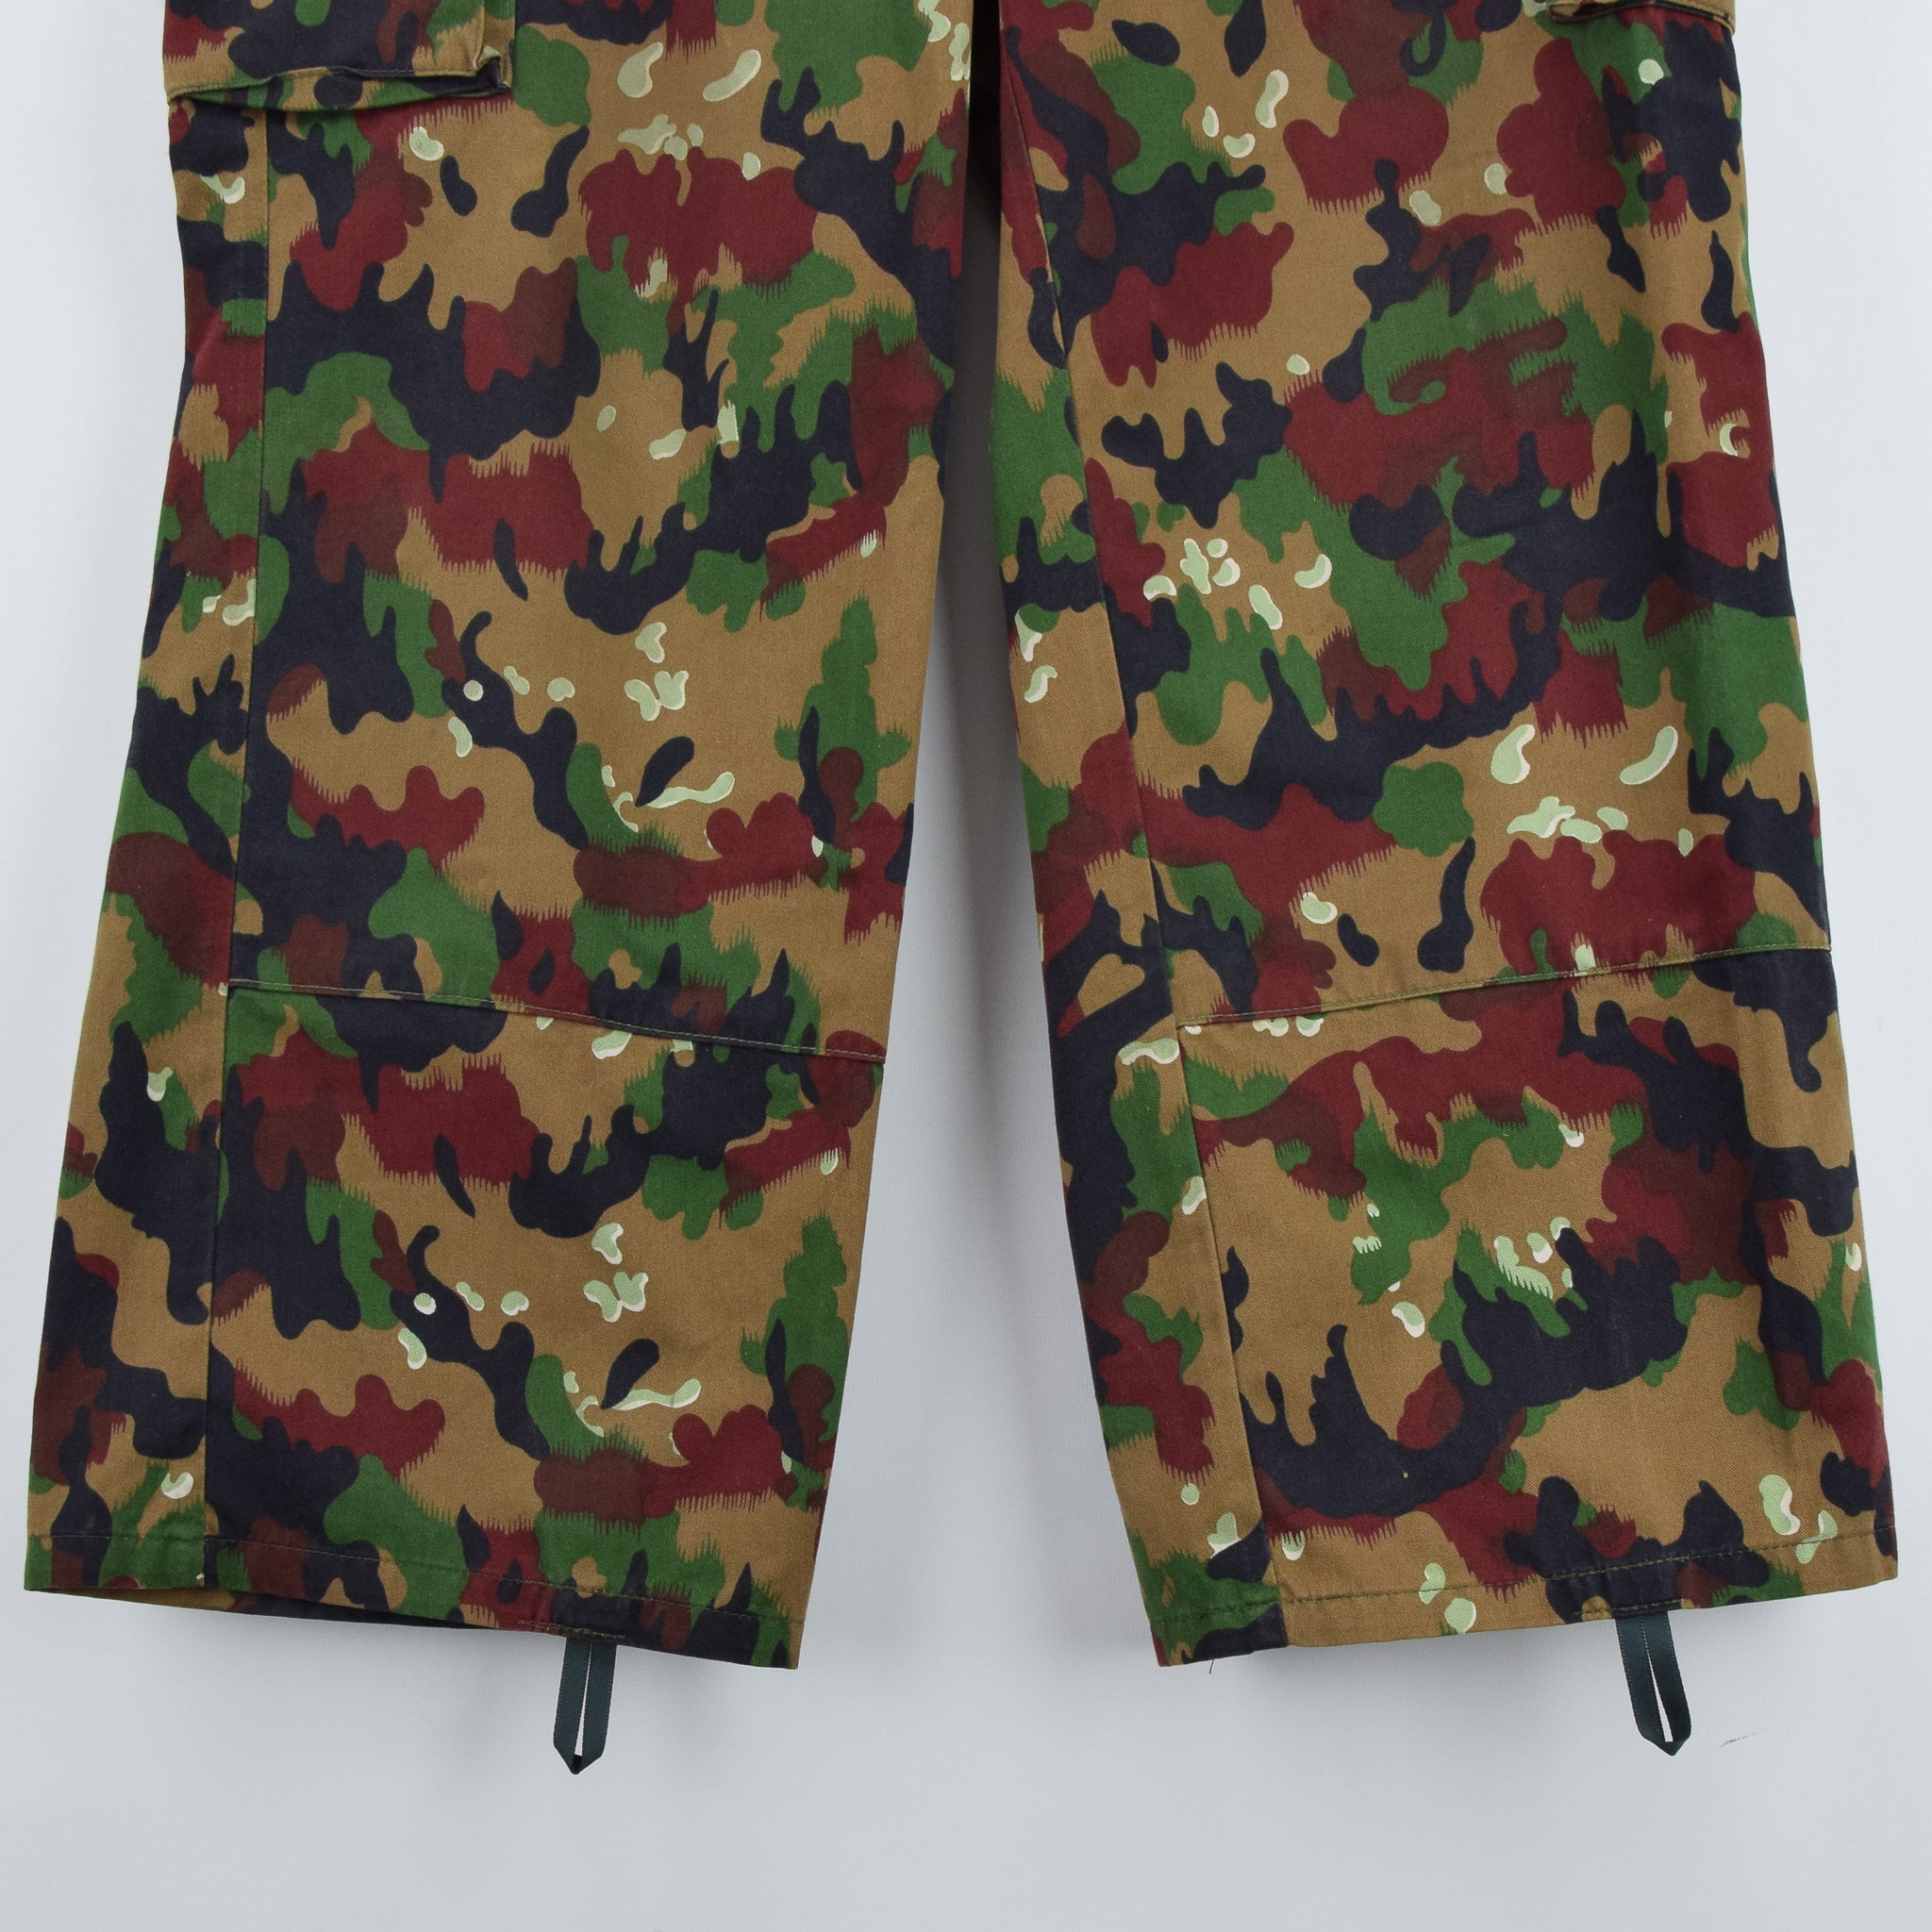 Vintage Swiss Army Alpenflage Camo Combat Pants Trousers Made in Sweden 32 W front hem